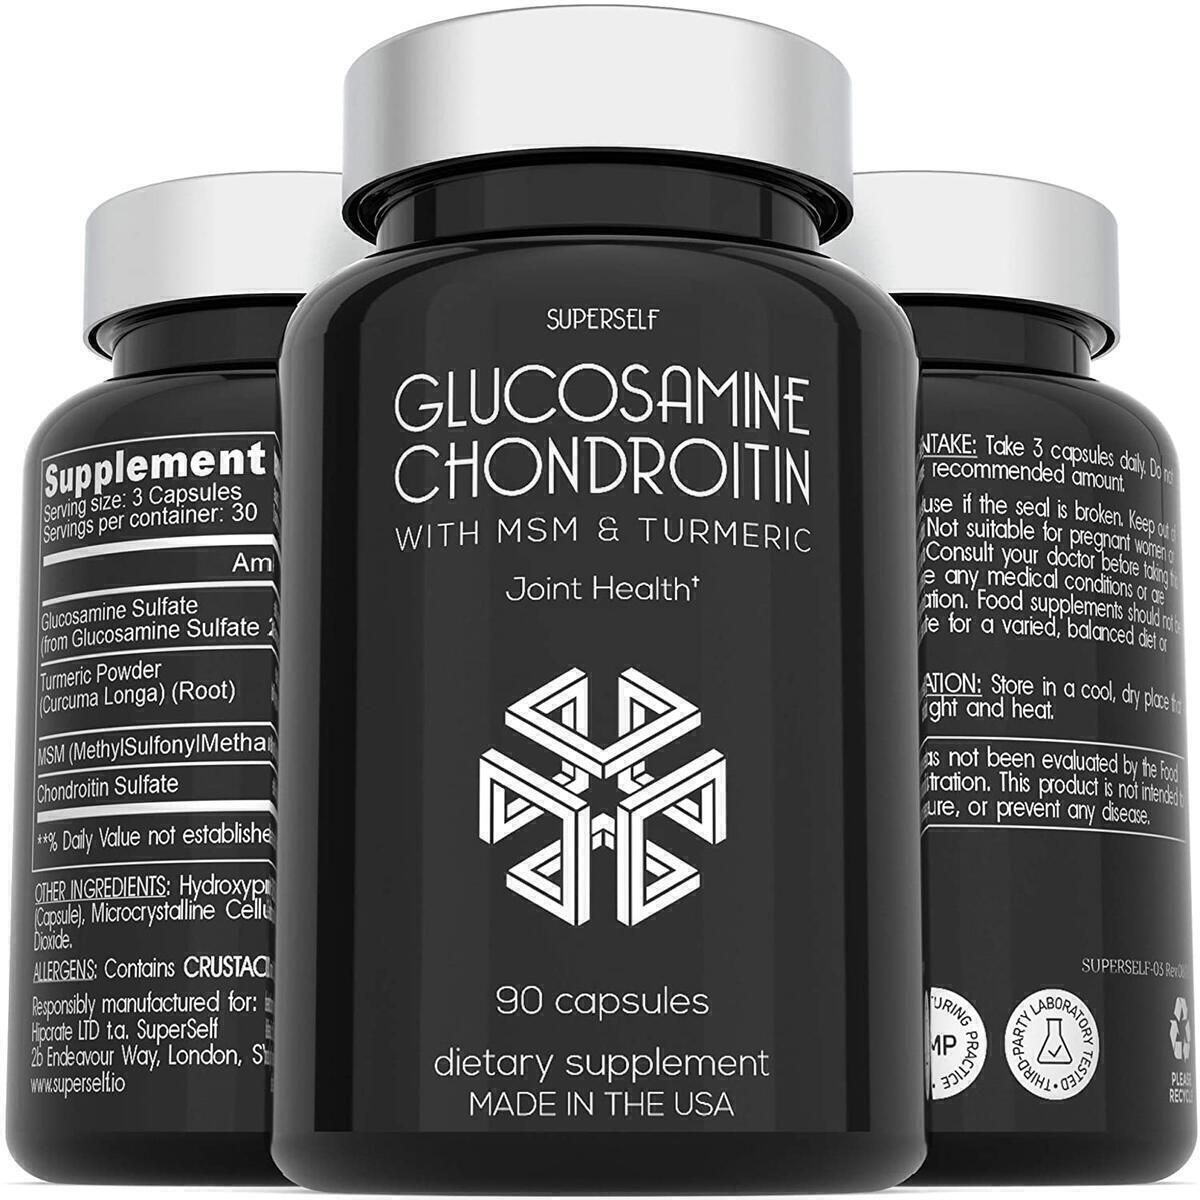 Glucosamine Chondroitin MSM with Turmeric - High Strength Joint Support Supplement for Adults - 90 Capsules - 1500mg